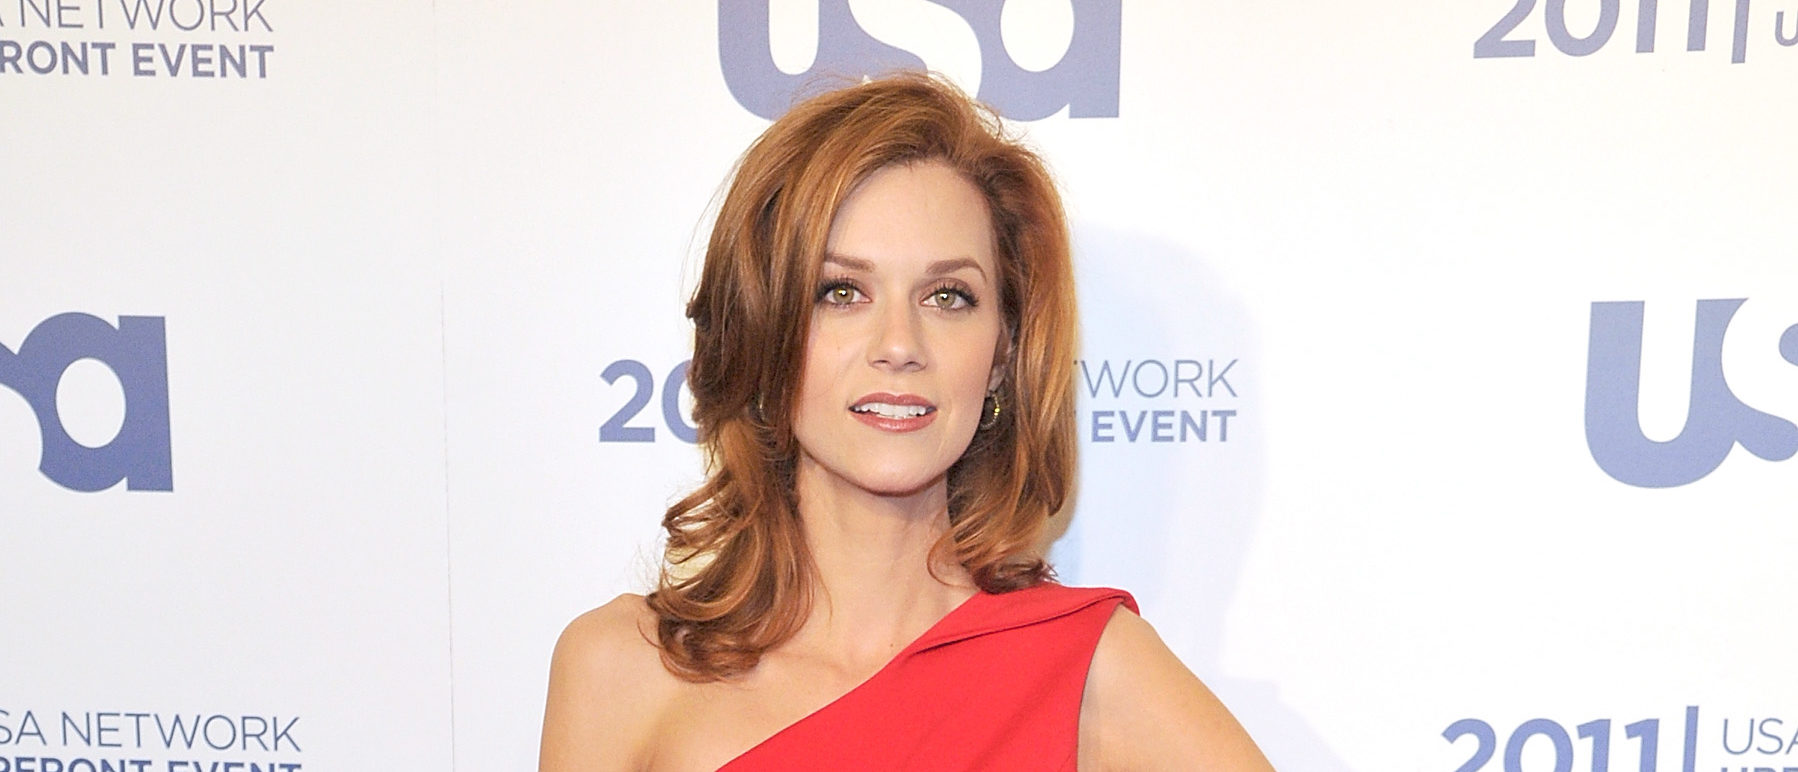 NEW YORK, NY - MAY 02: Actress Hilarie Burton attends the 2011 USA Upfront at The Tent at Lincoln Center on May 2, 2011 in New York City. (Photo by Joe Corrigan/Getty Images)